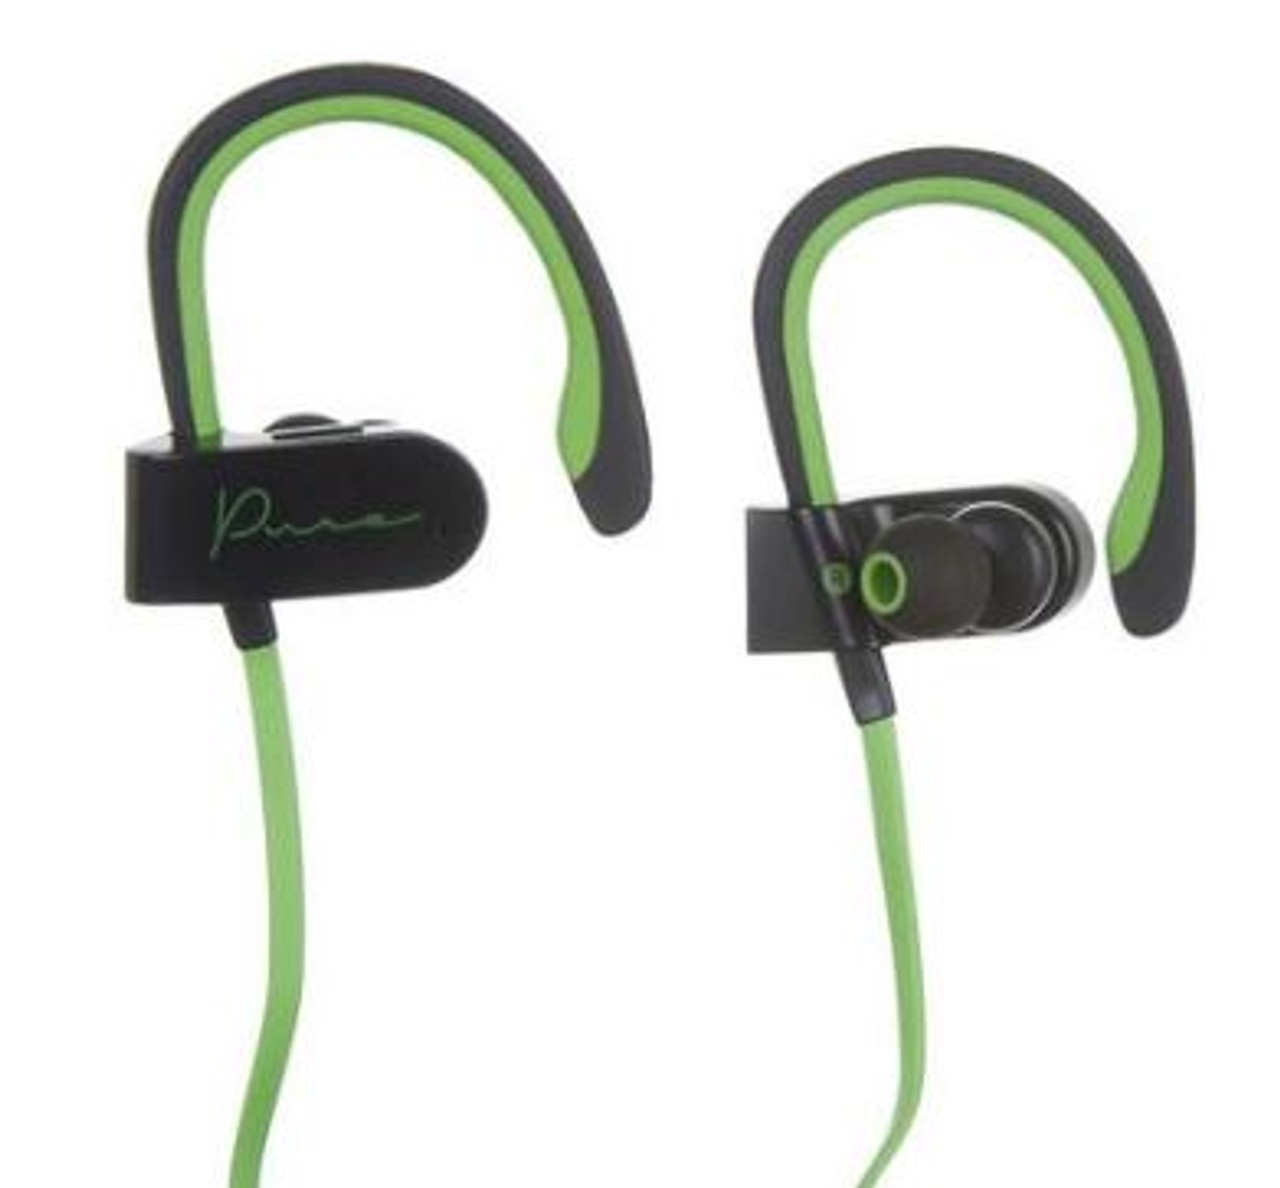 3c0b1cddac2609 Mental Beats 72323 Pure Wireless Earbuds with Mic Green/Black - Deal ...